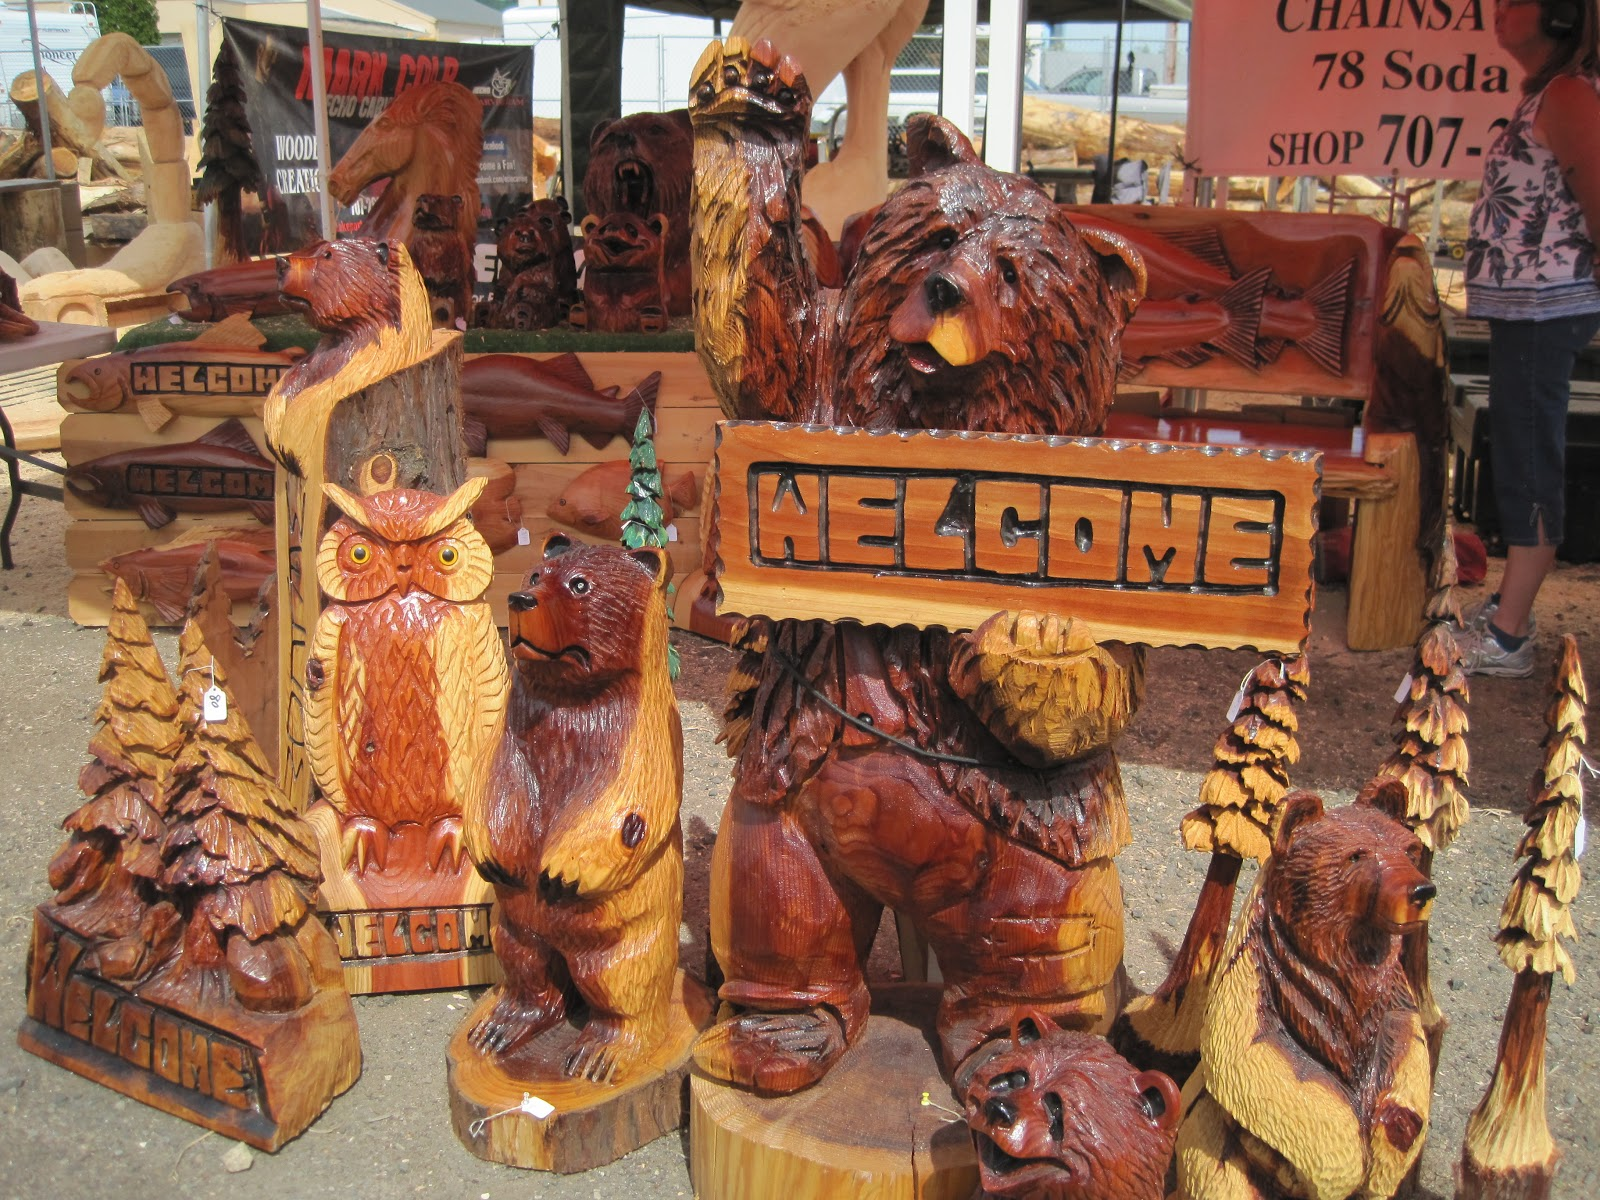 The daymaker chainsaw art in northwest